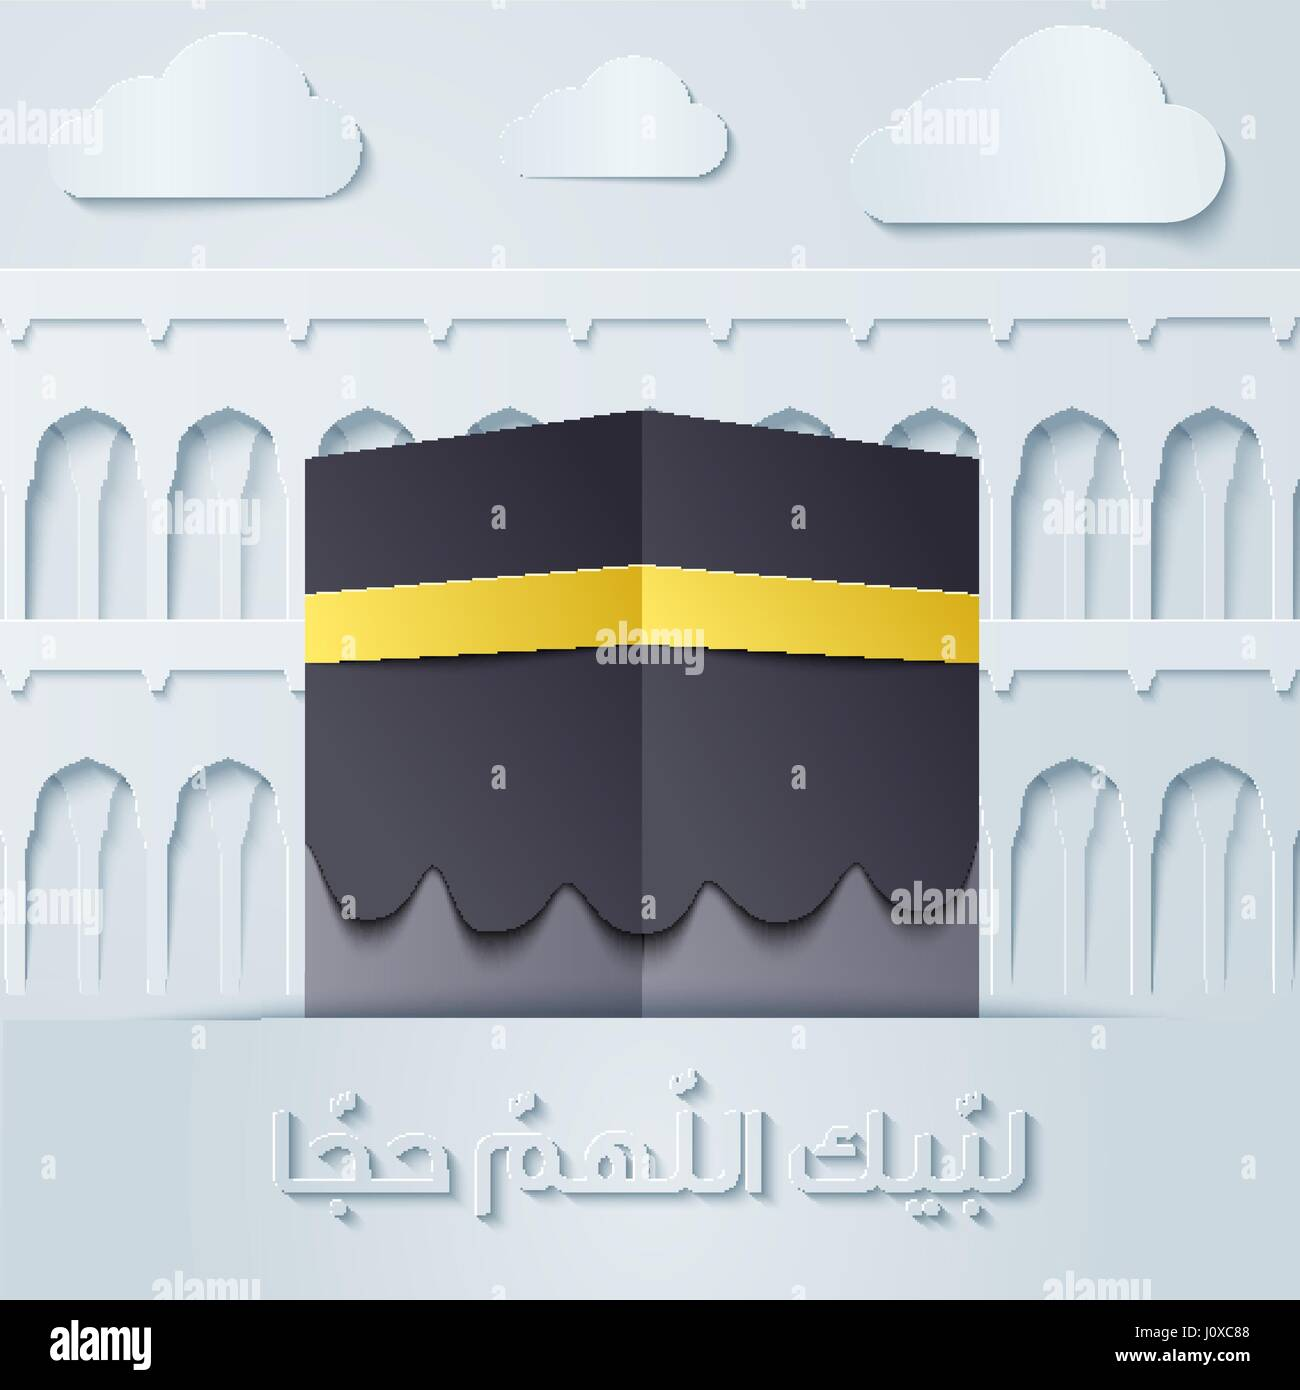 Umrah Banner: Kaaba And Mosque Eid Adha Mubarak For Hajj Greeting Stock